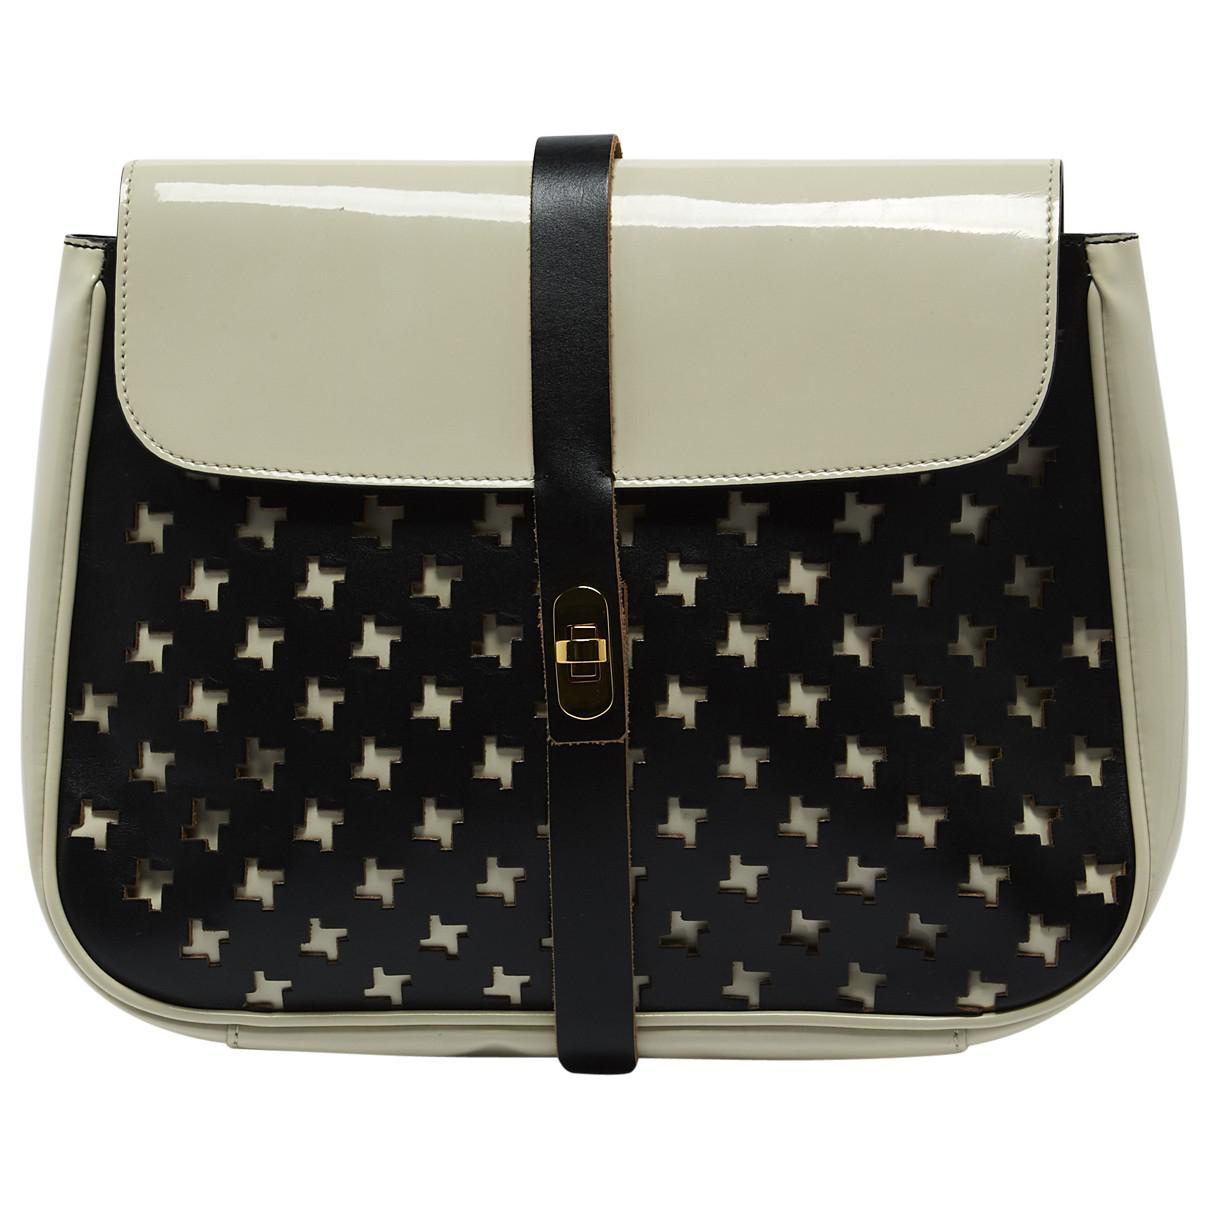 Marni Pre-owned - Leather clutch bag A9EvEmnG